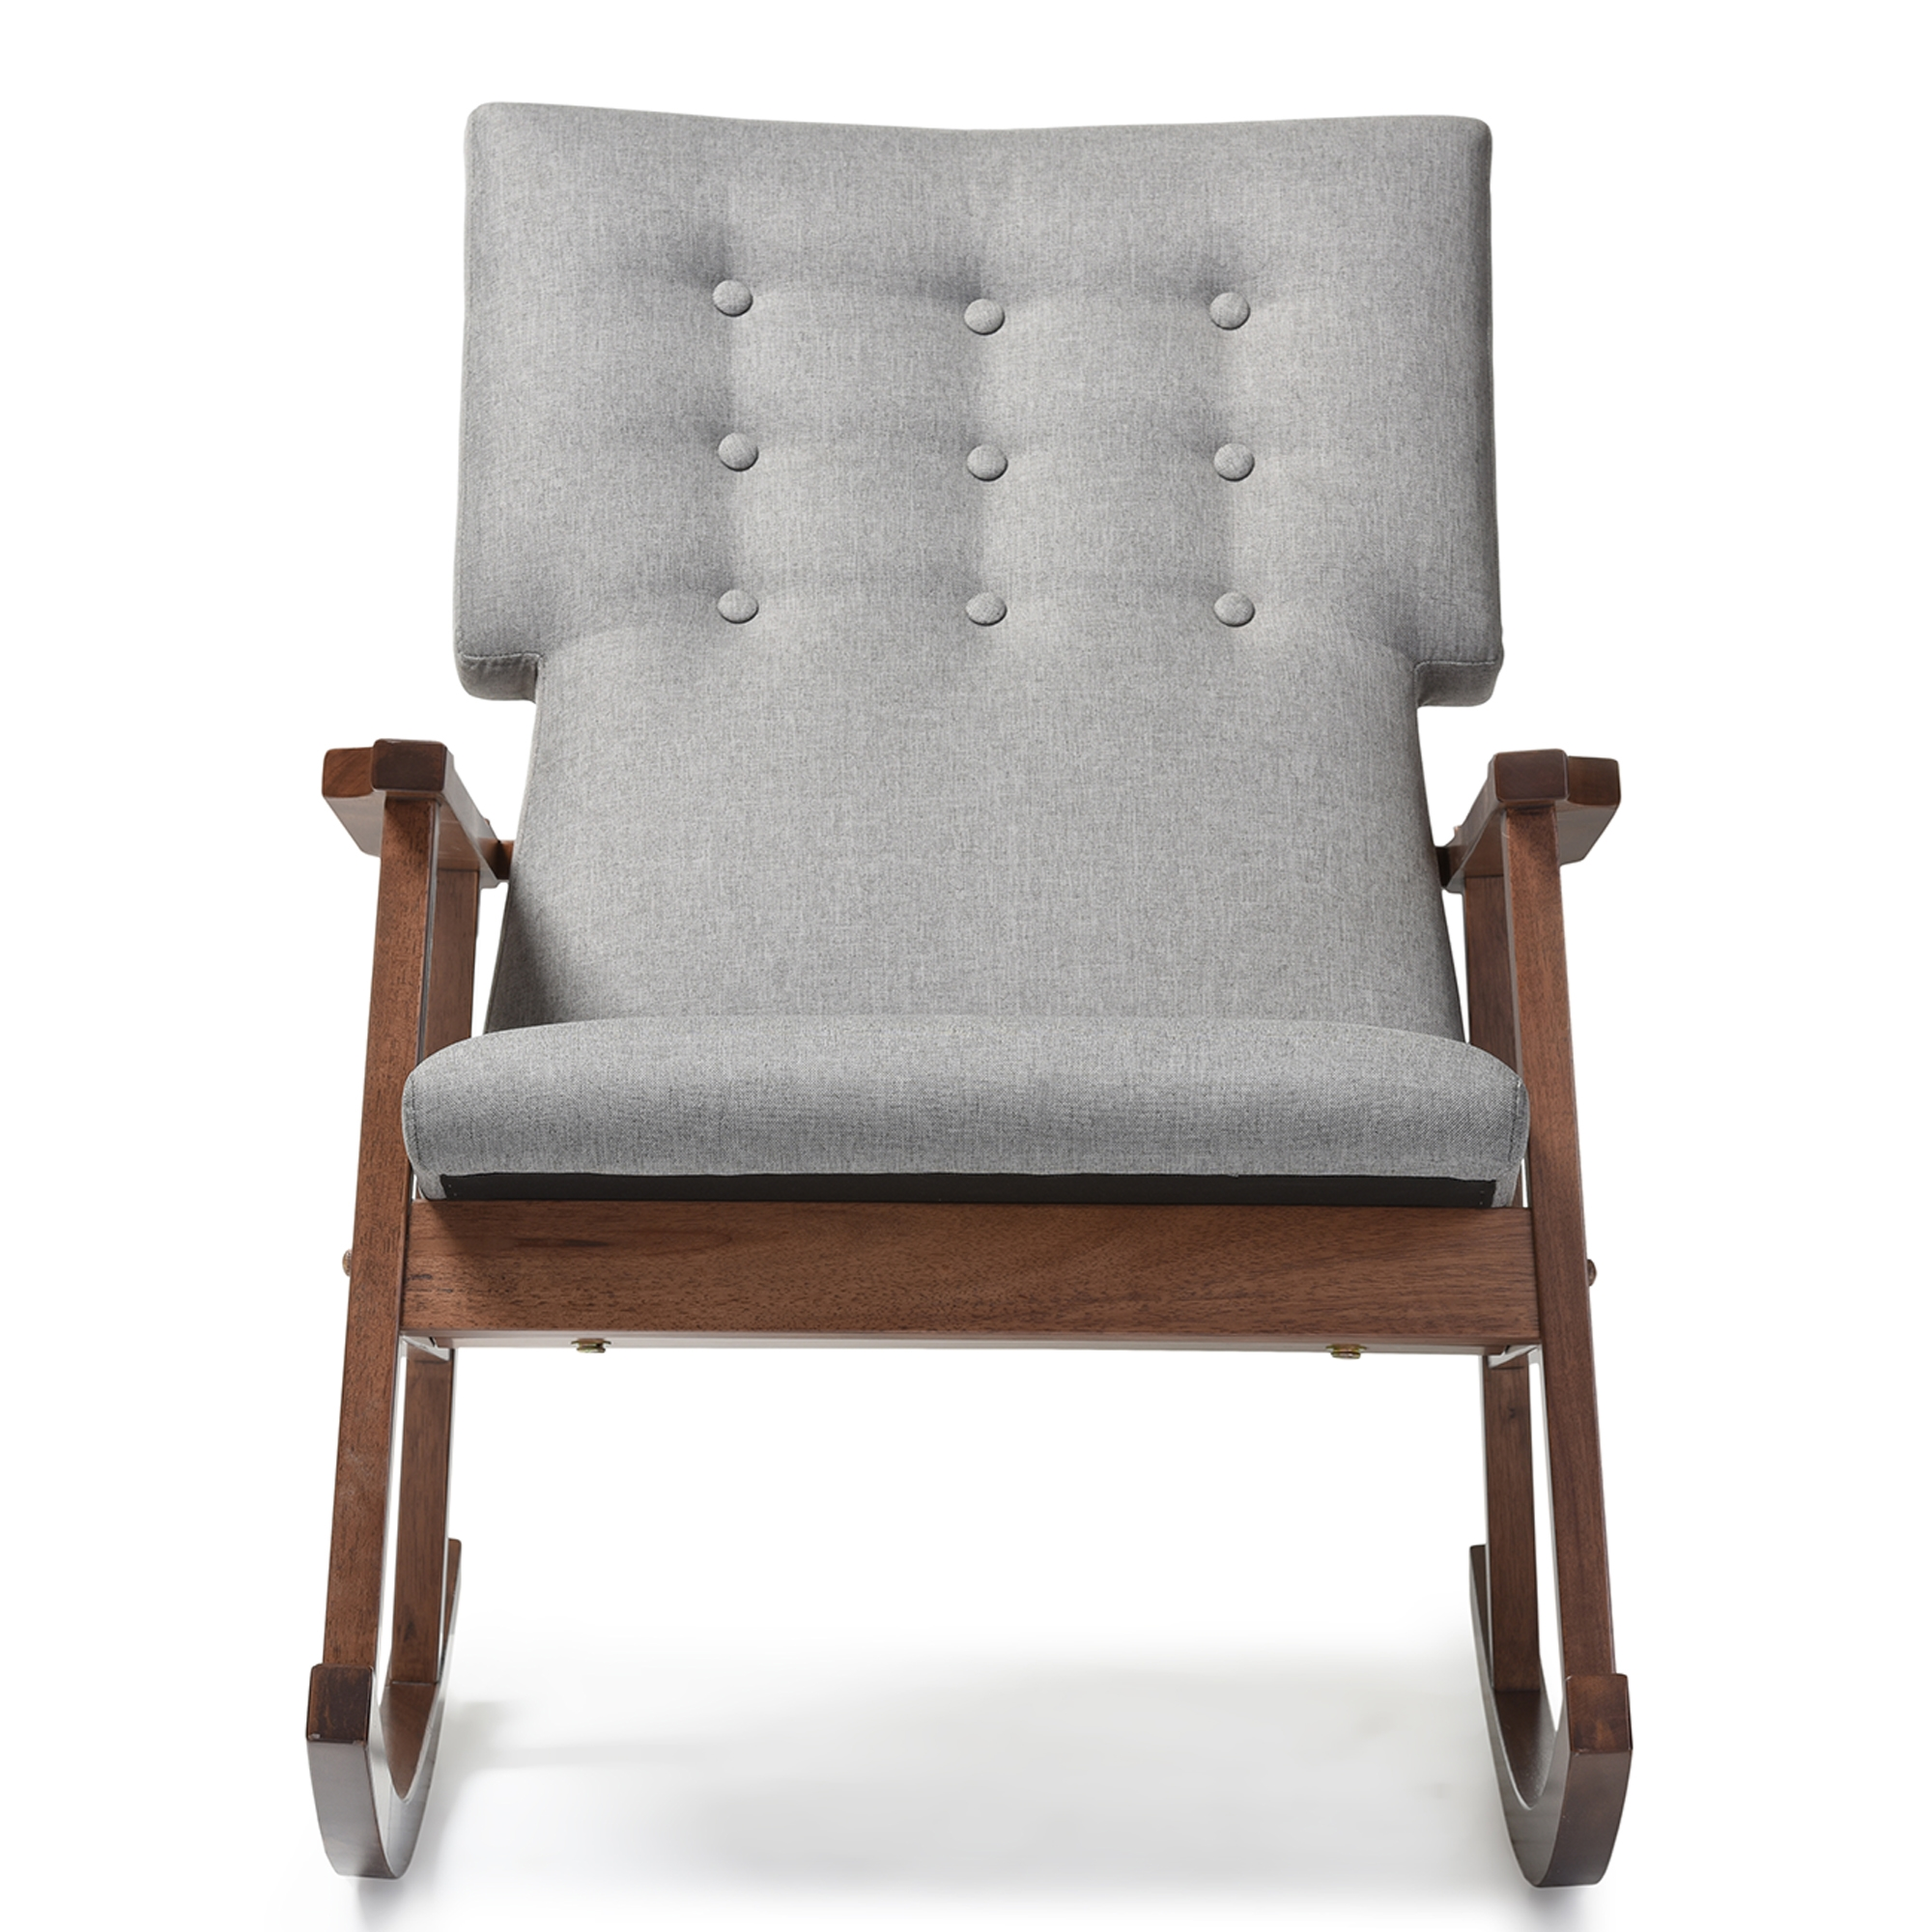 Exceptional Baxton Studio Agatha Mid Century Modern Grey Fabric Upholstered  Button Tufted Rocking Chair